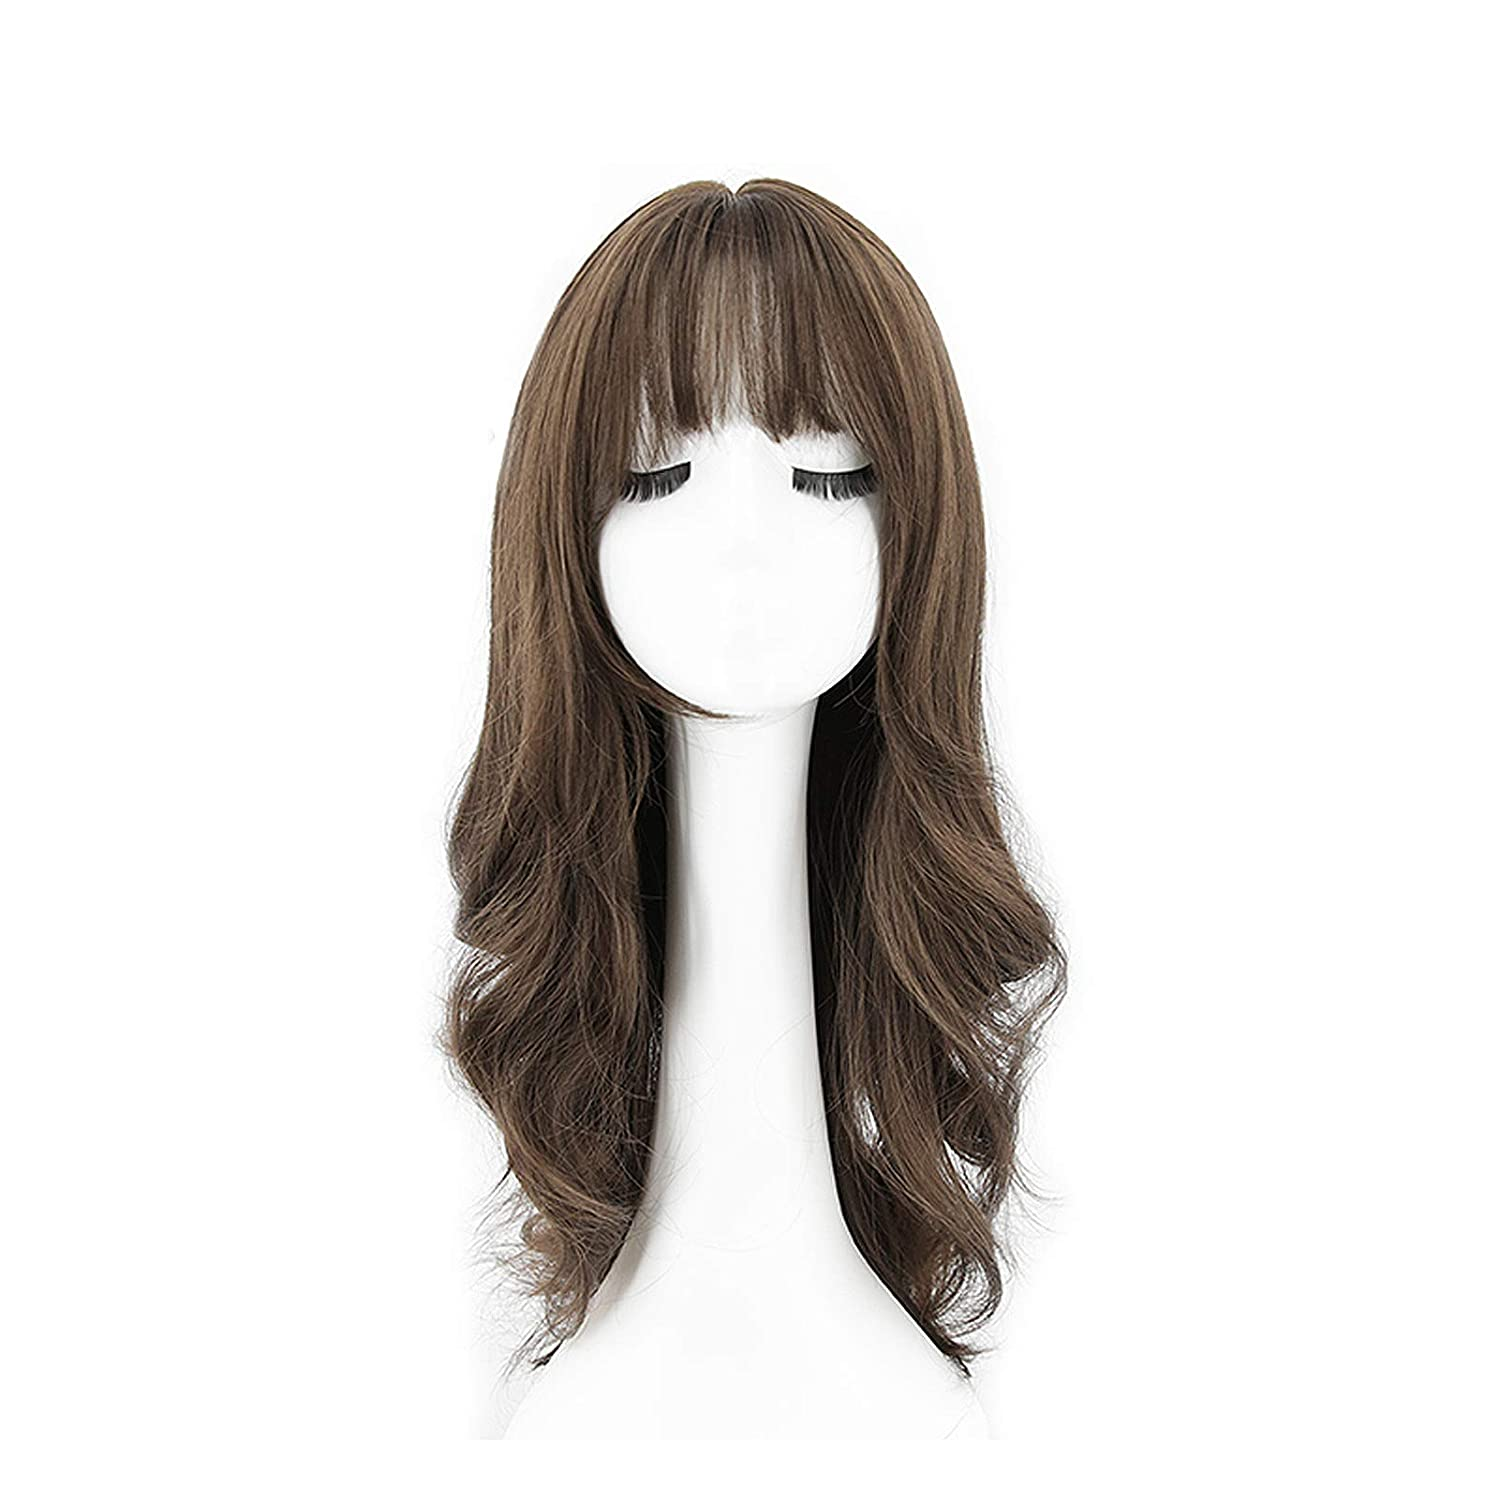 Long Curly Wig Ombre Brown Hair excellence Part Wigs Superior for Middle Women